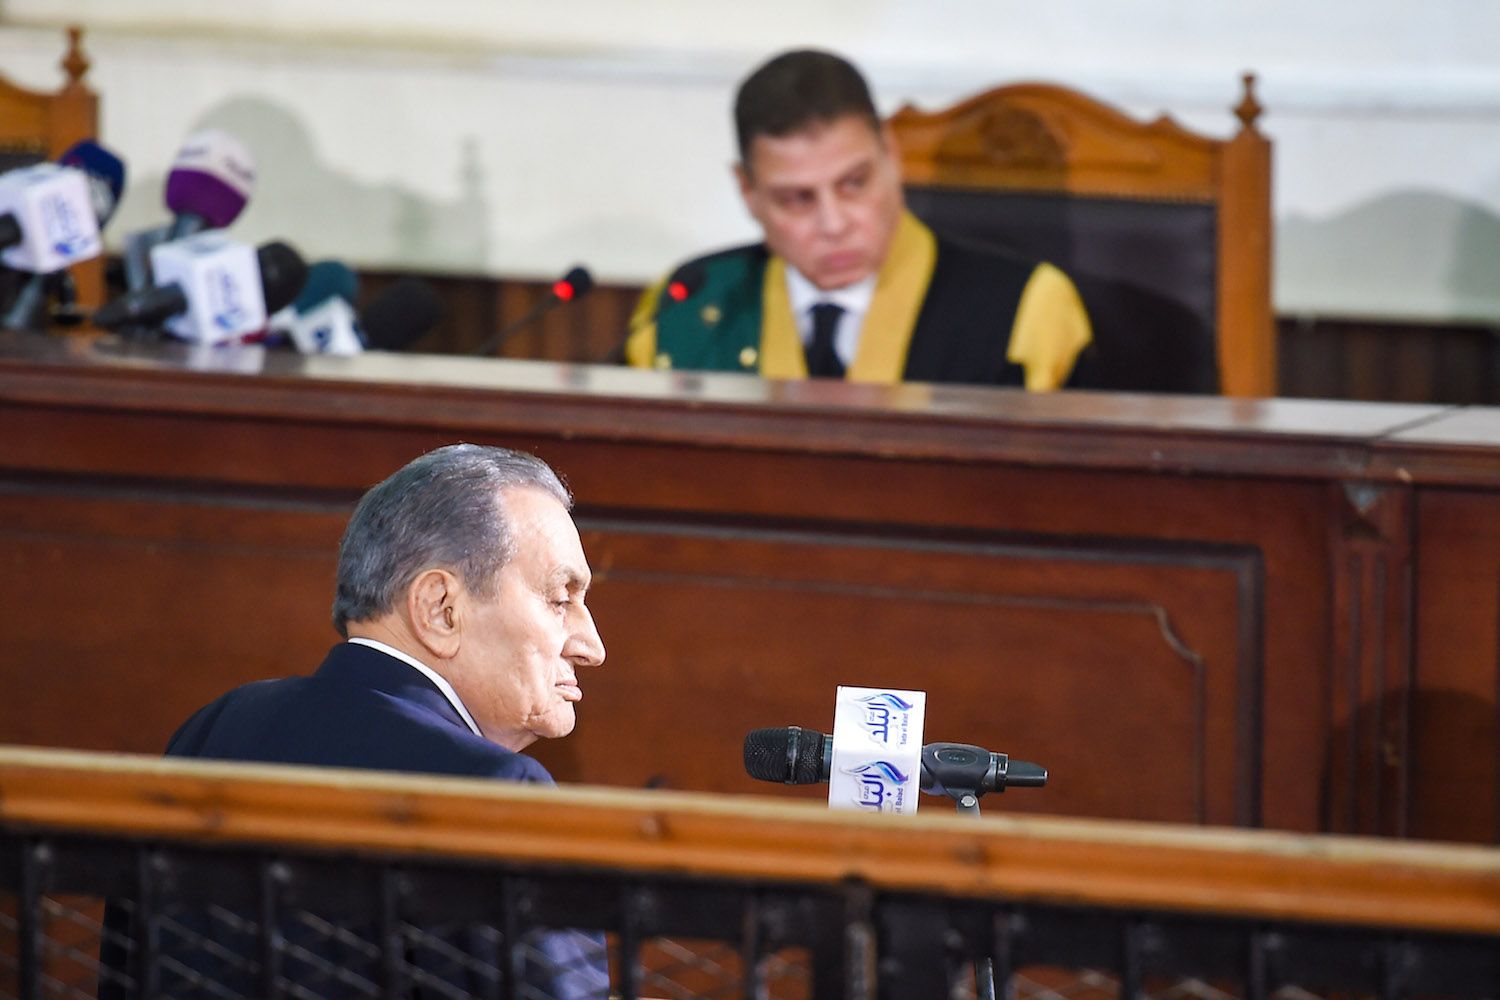 Hosni Mubarak Is Dead, and His Downfall Is His Legacy